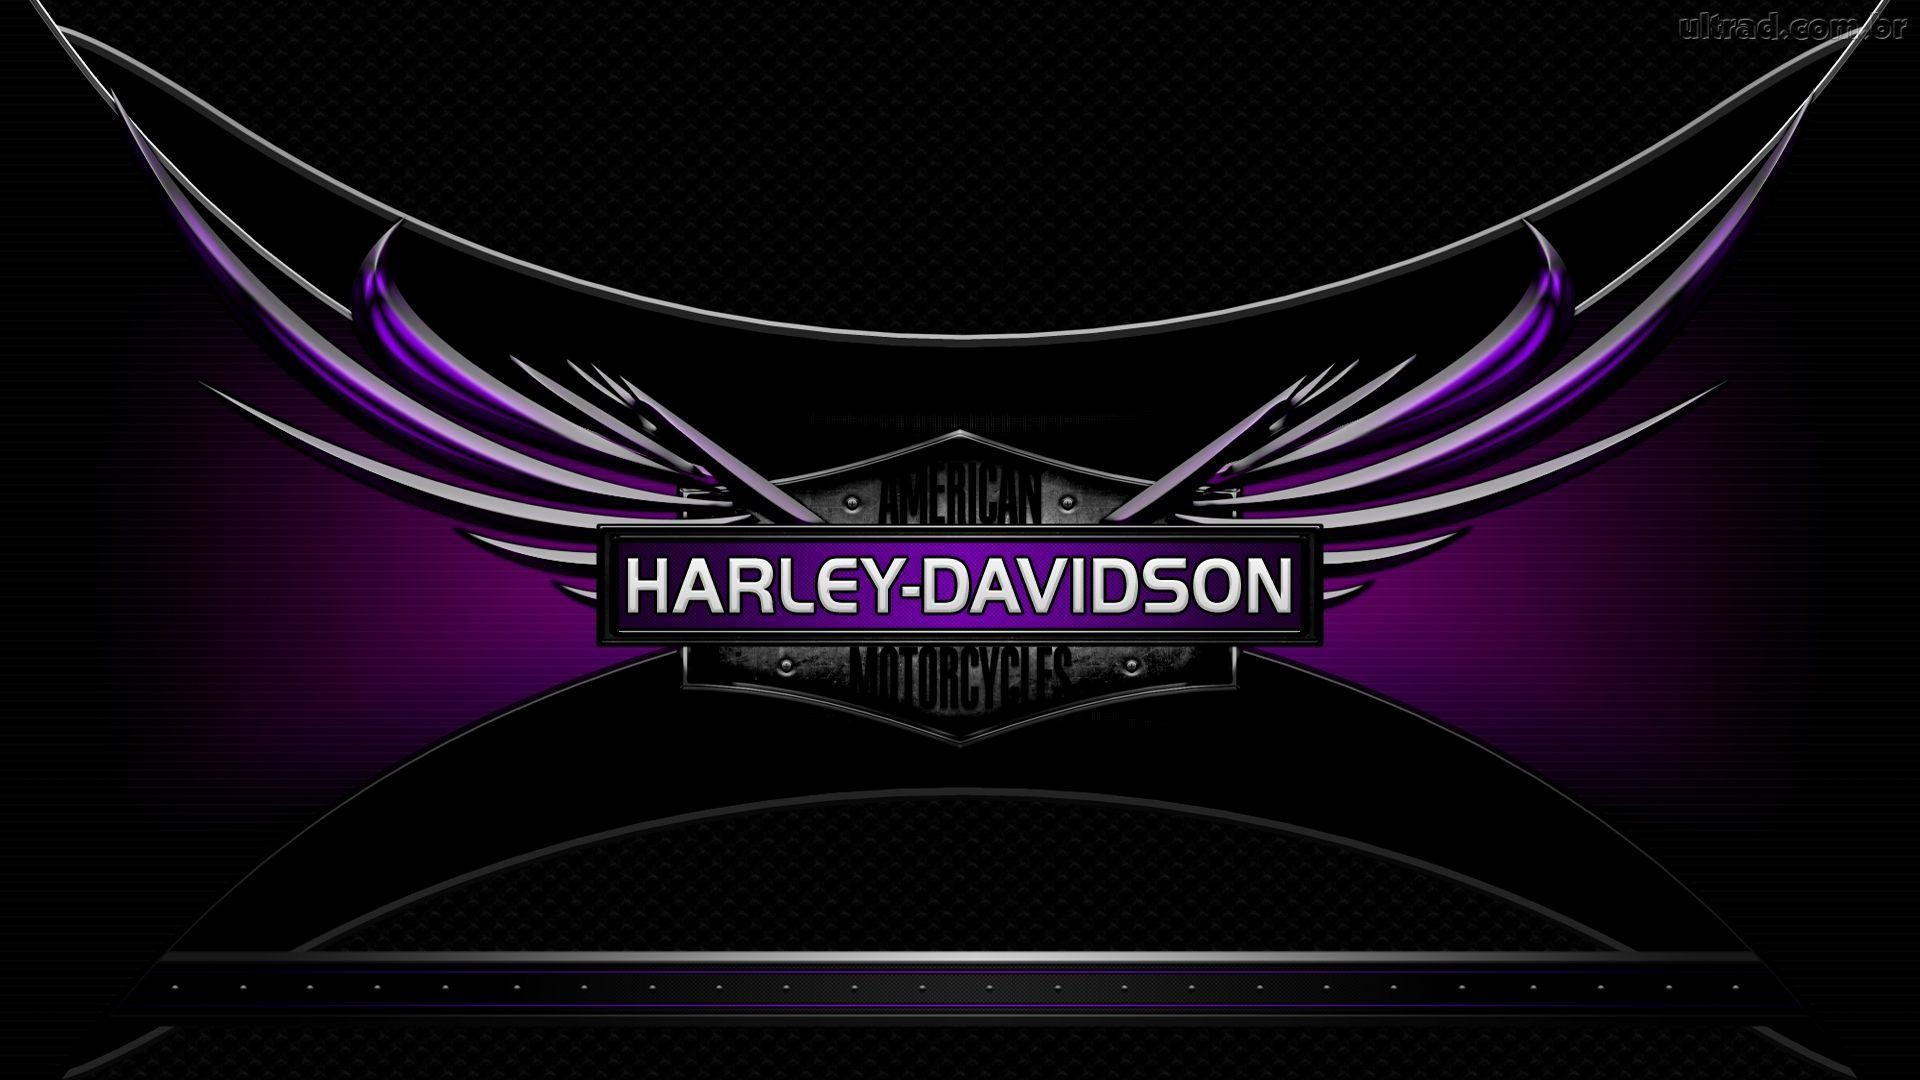 Harley Davidson Wallpapers Screensavers 80 Images 1920x1200 Wallpaper Stores Windows